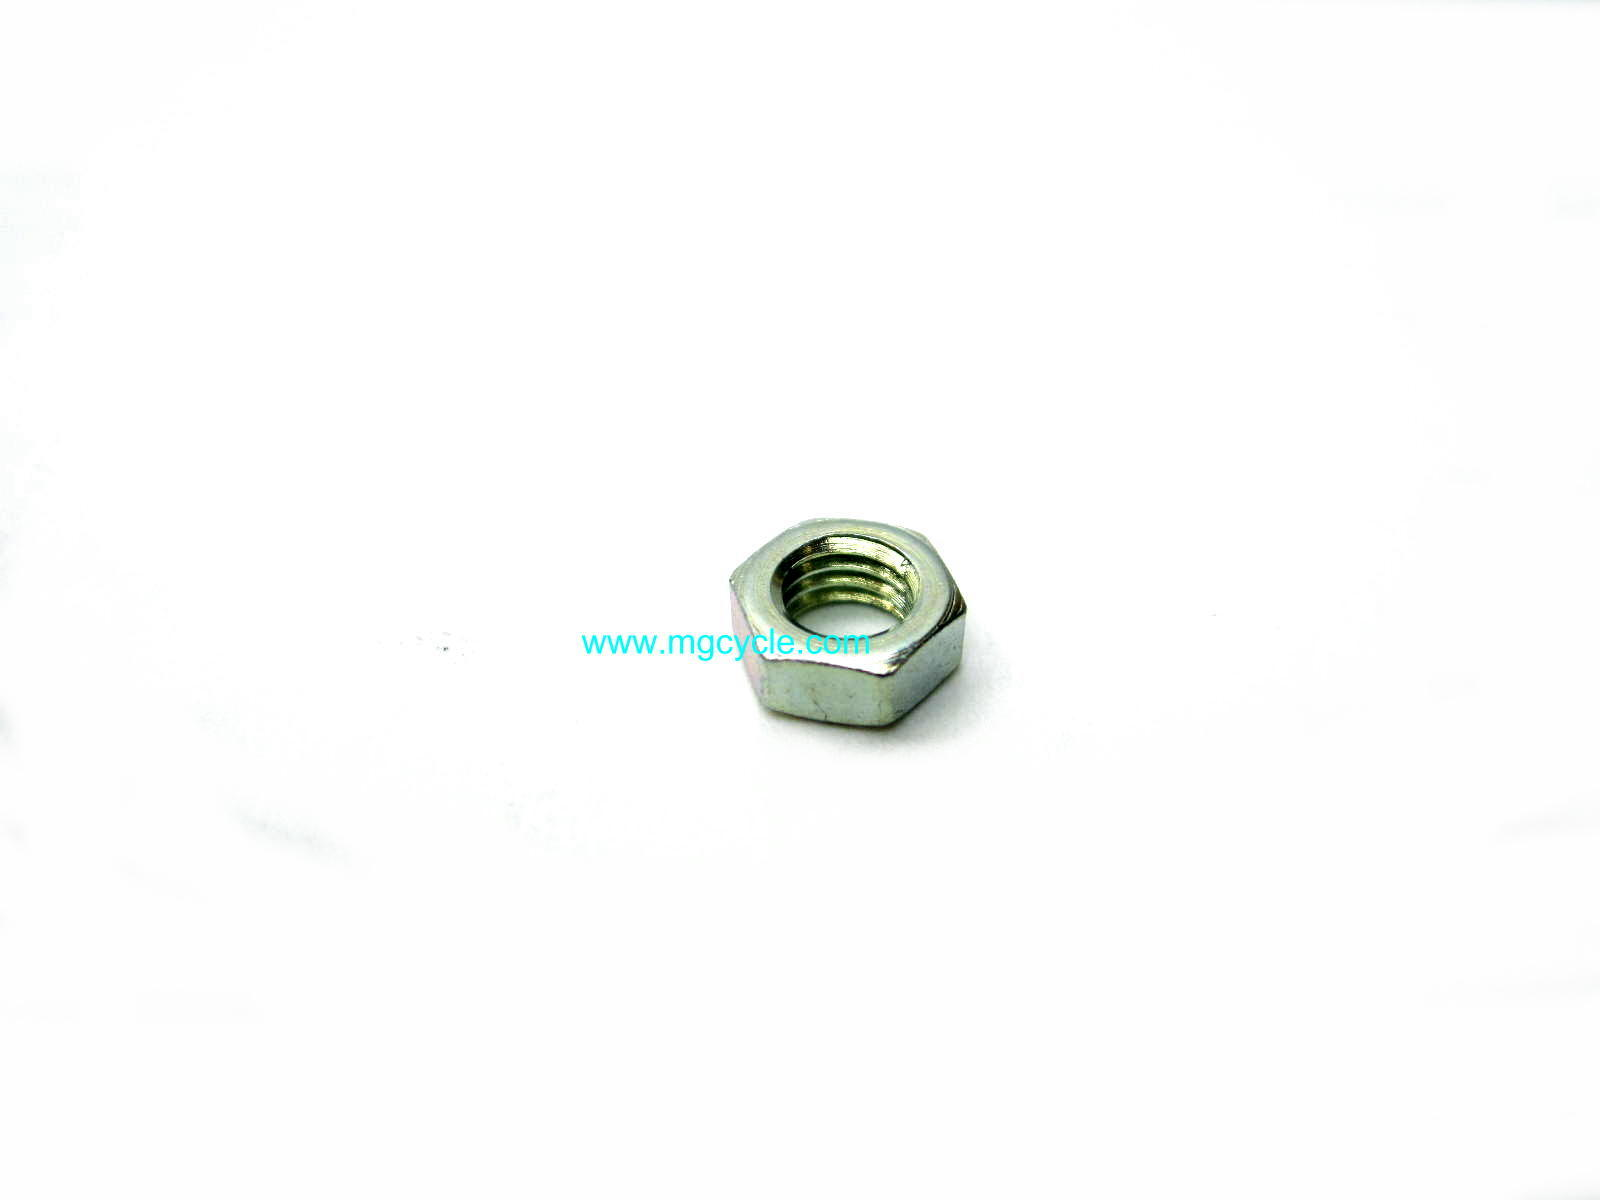 Dellorto cable adjuster lock nut, PHF PHM